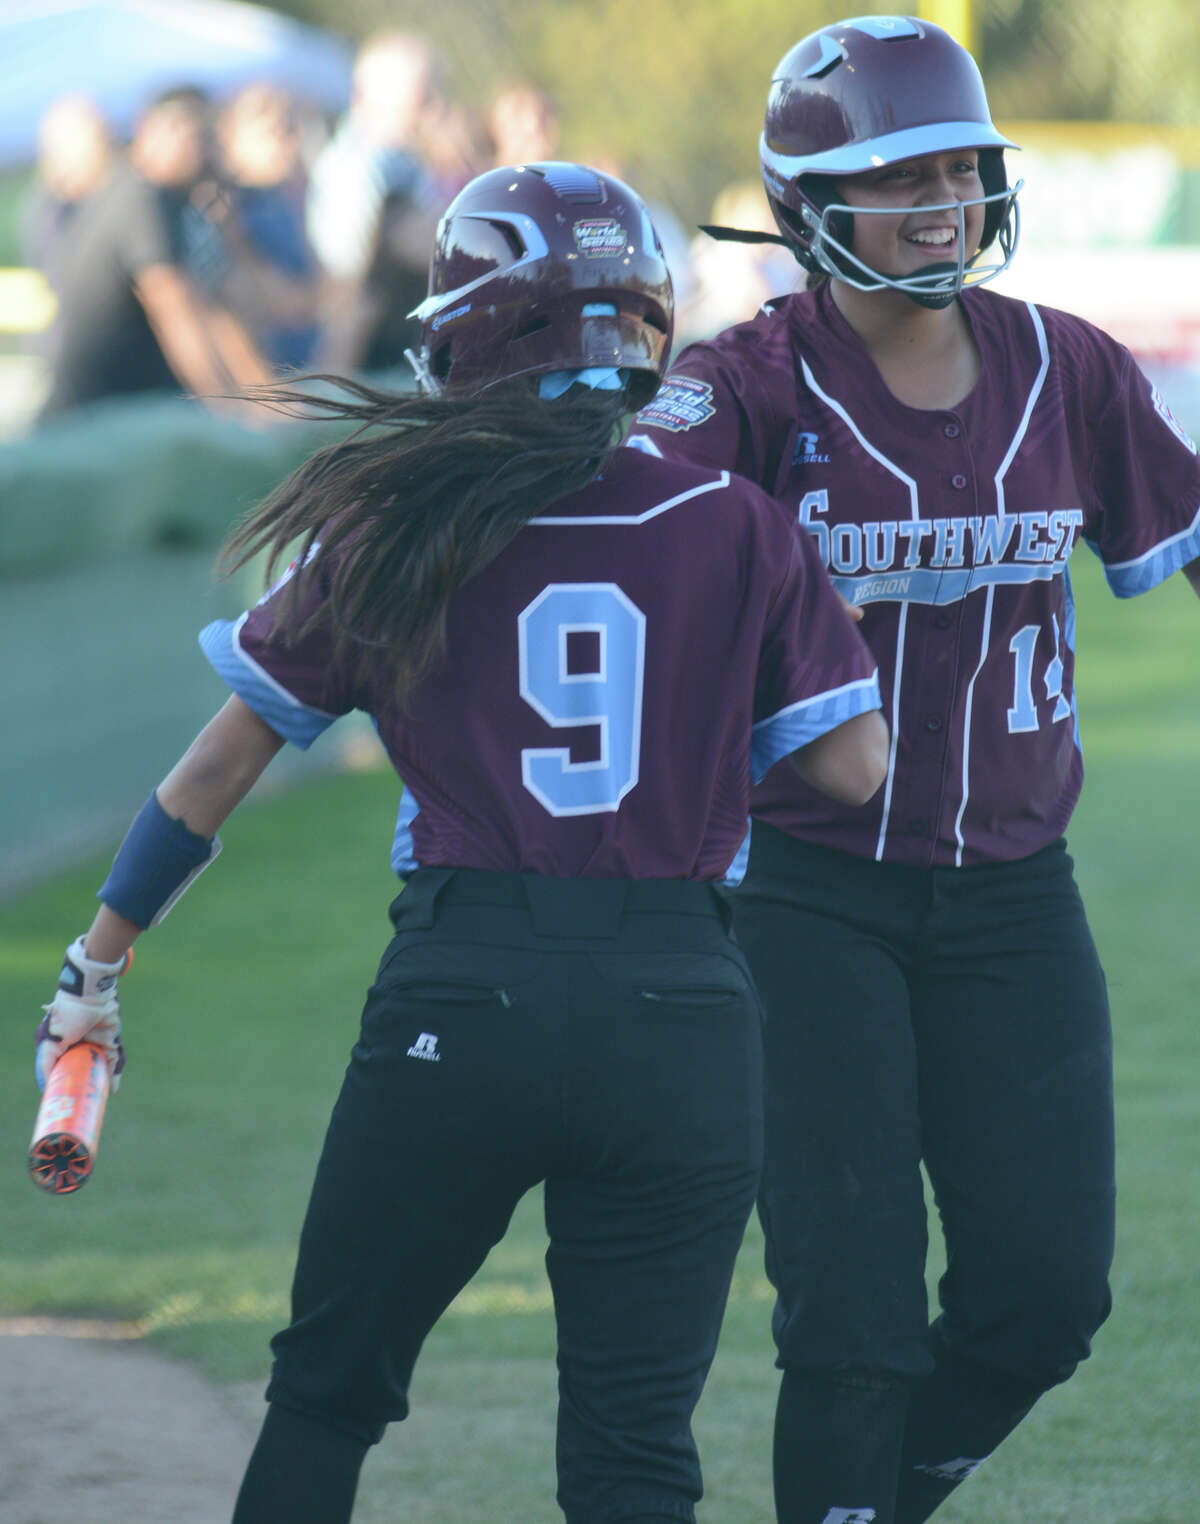 Annika Litterio, 14, greets Avery Ranger on her way back to the dugout after Ranger scored the game's first run on a single to right field by Jada Munoz.